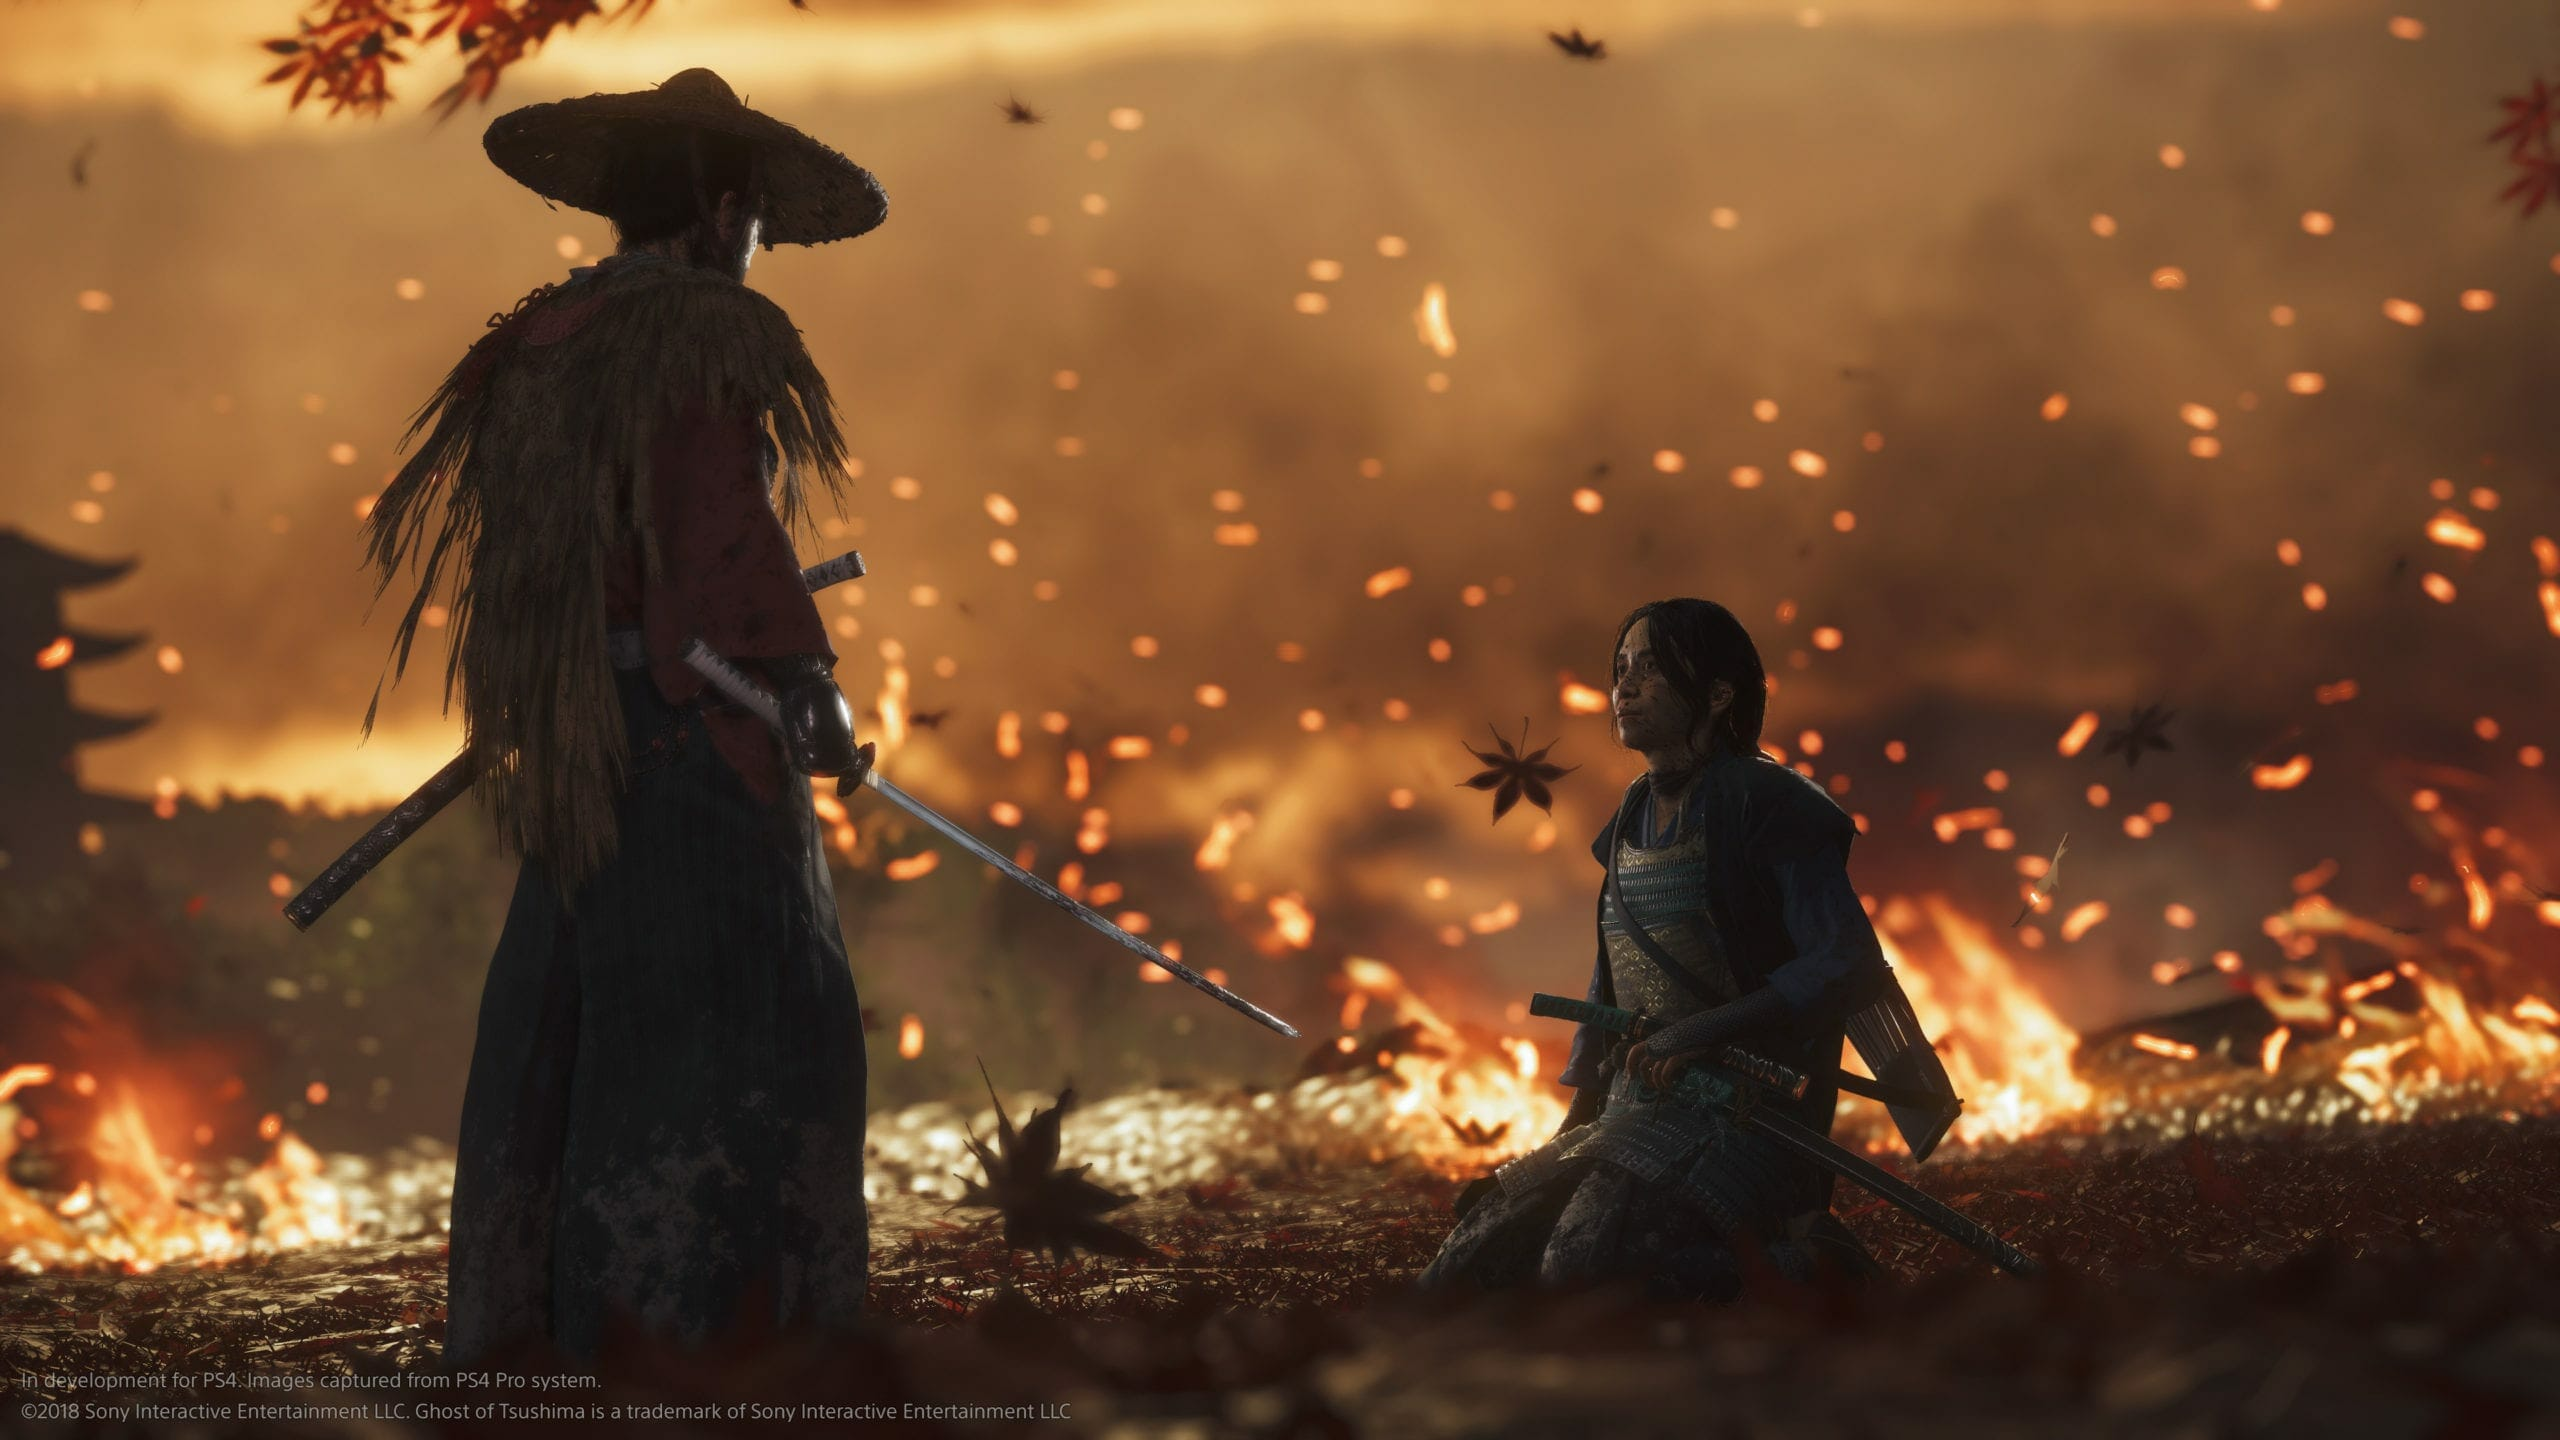 Ghost of Tsushima file size